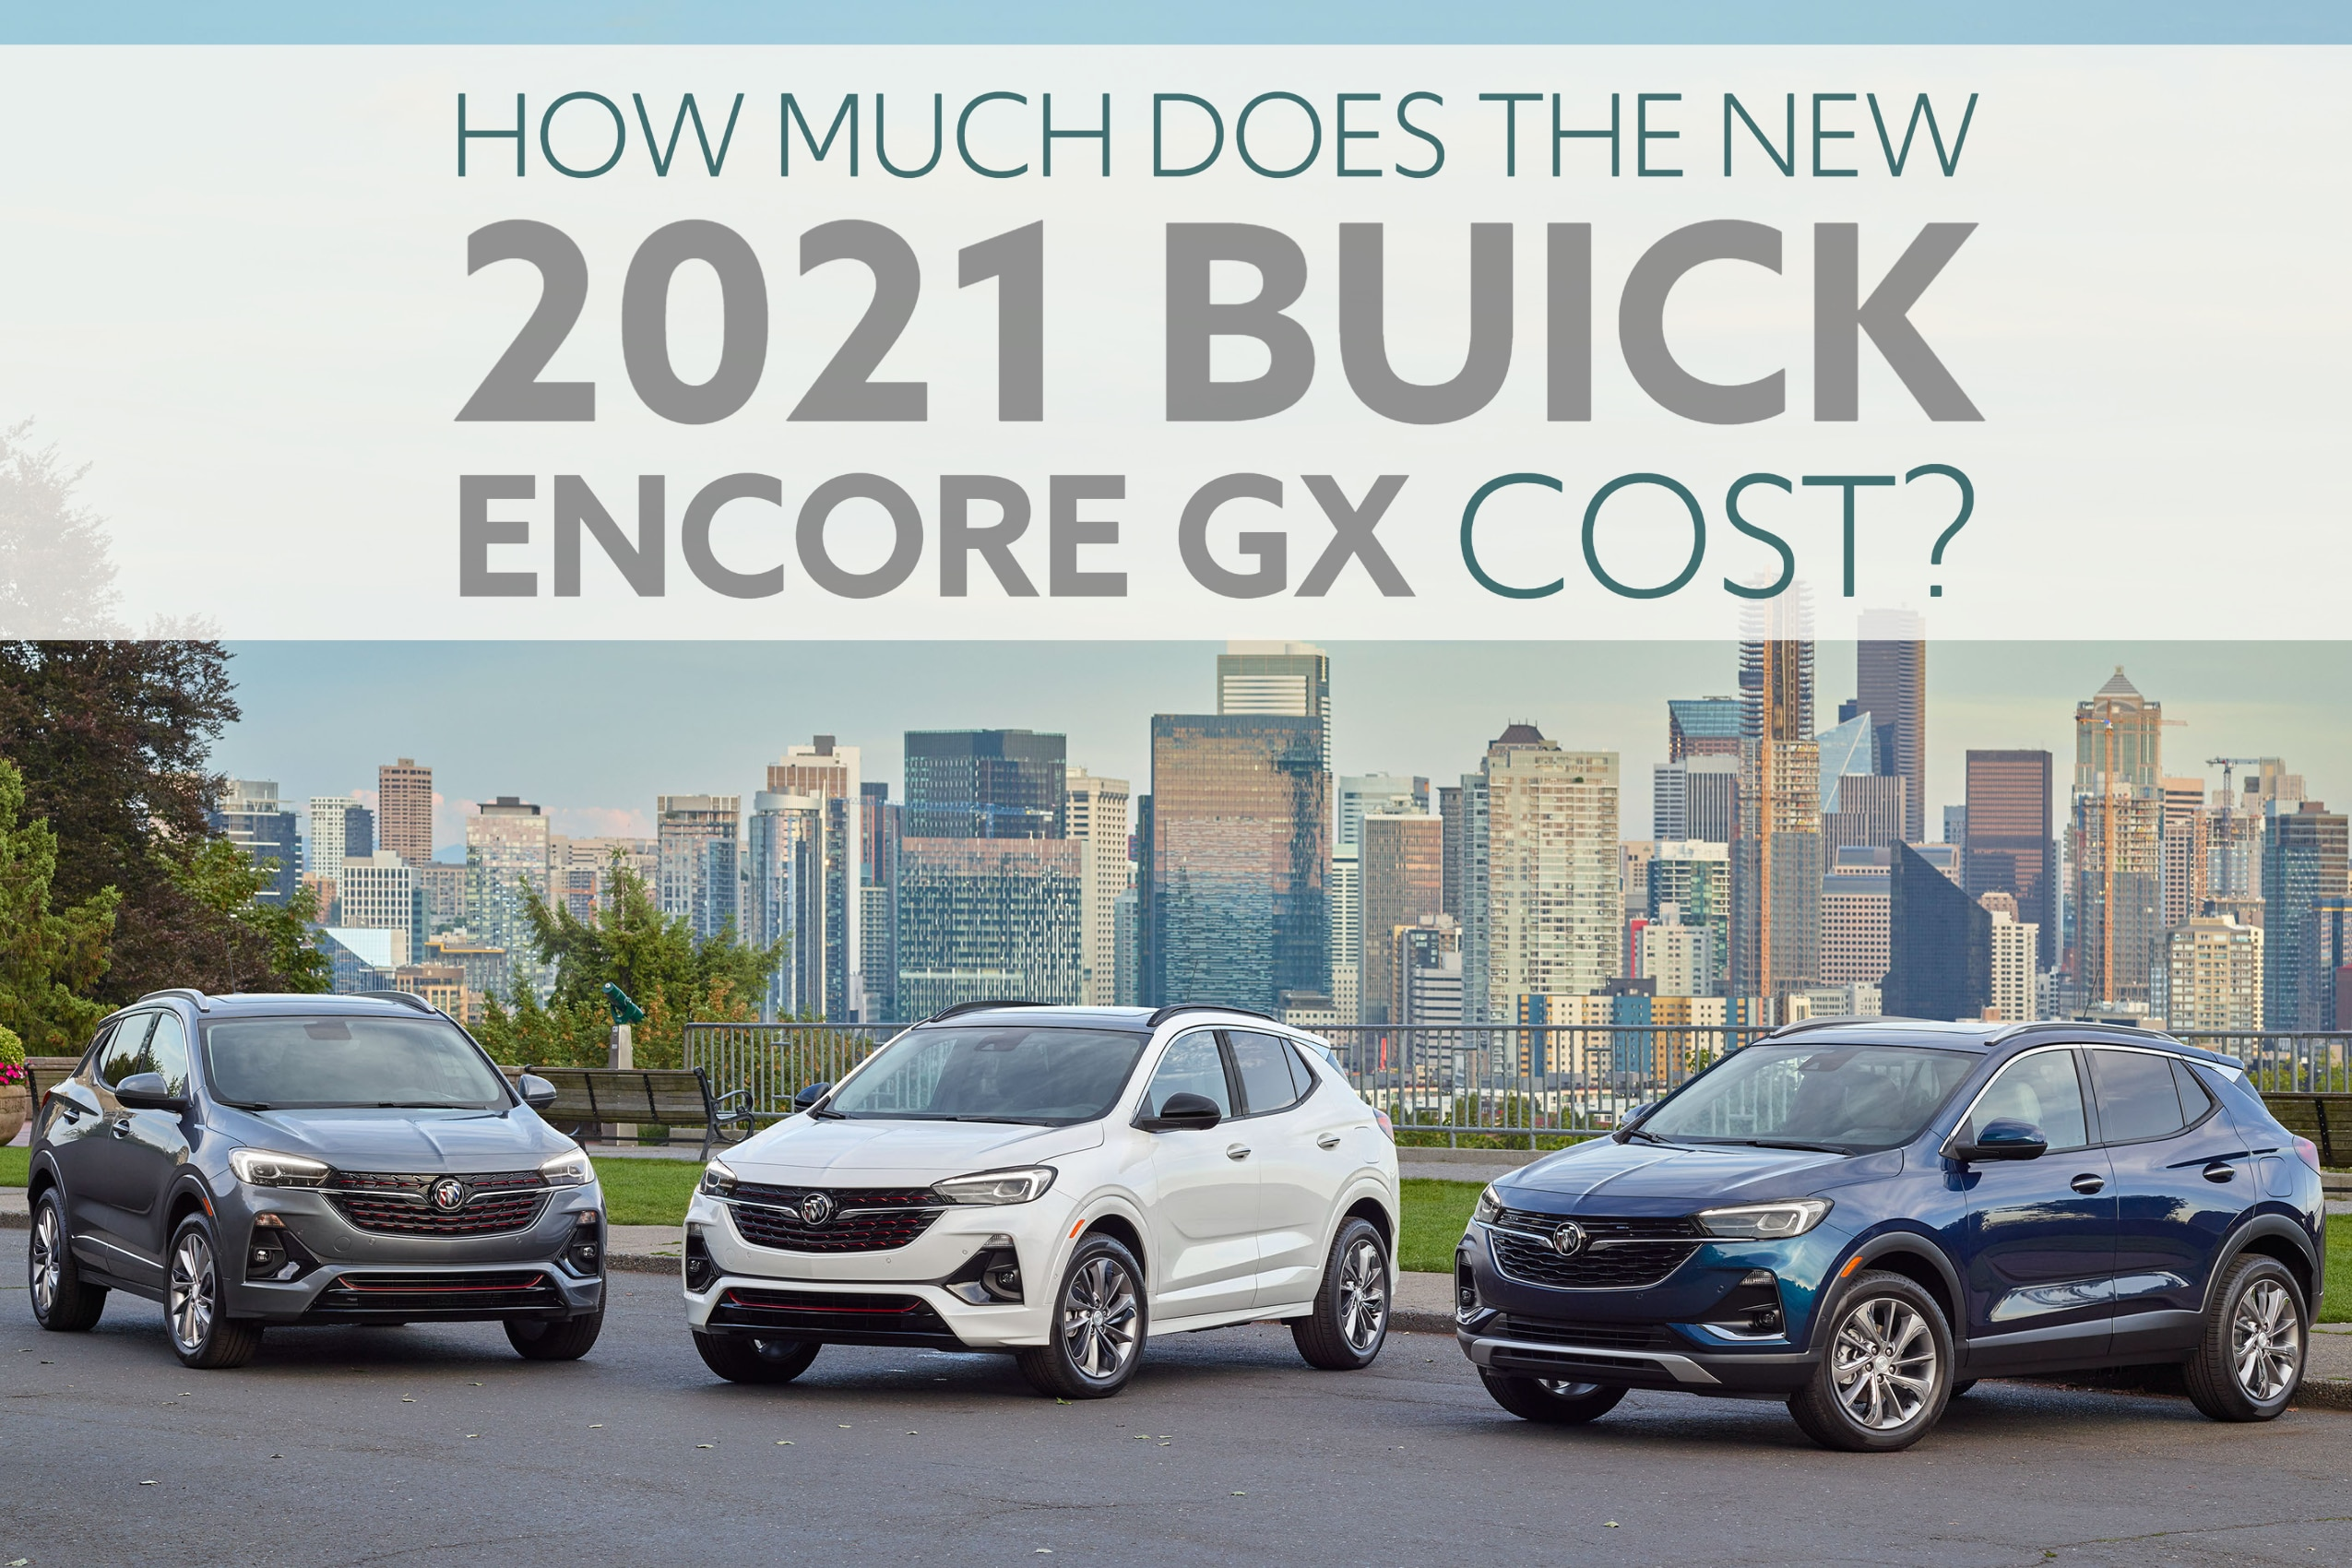 """Buick Encore GX lineup in front of City Skyline with Words """"How much does the new 2021 Buick Encore GX cost?"""""""